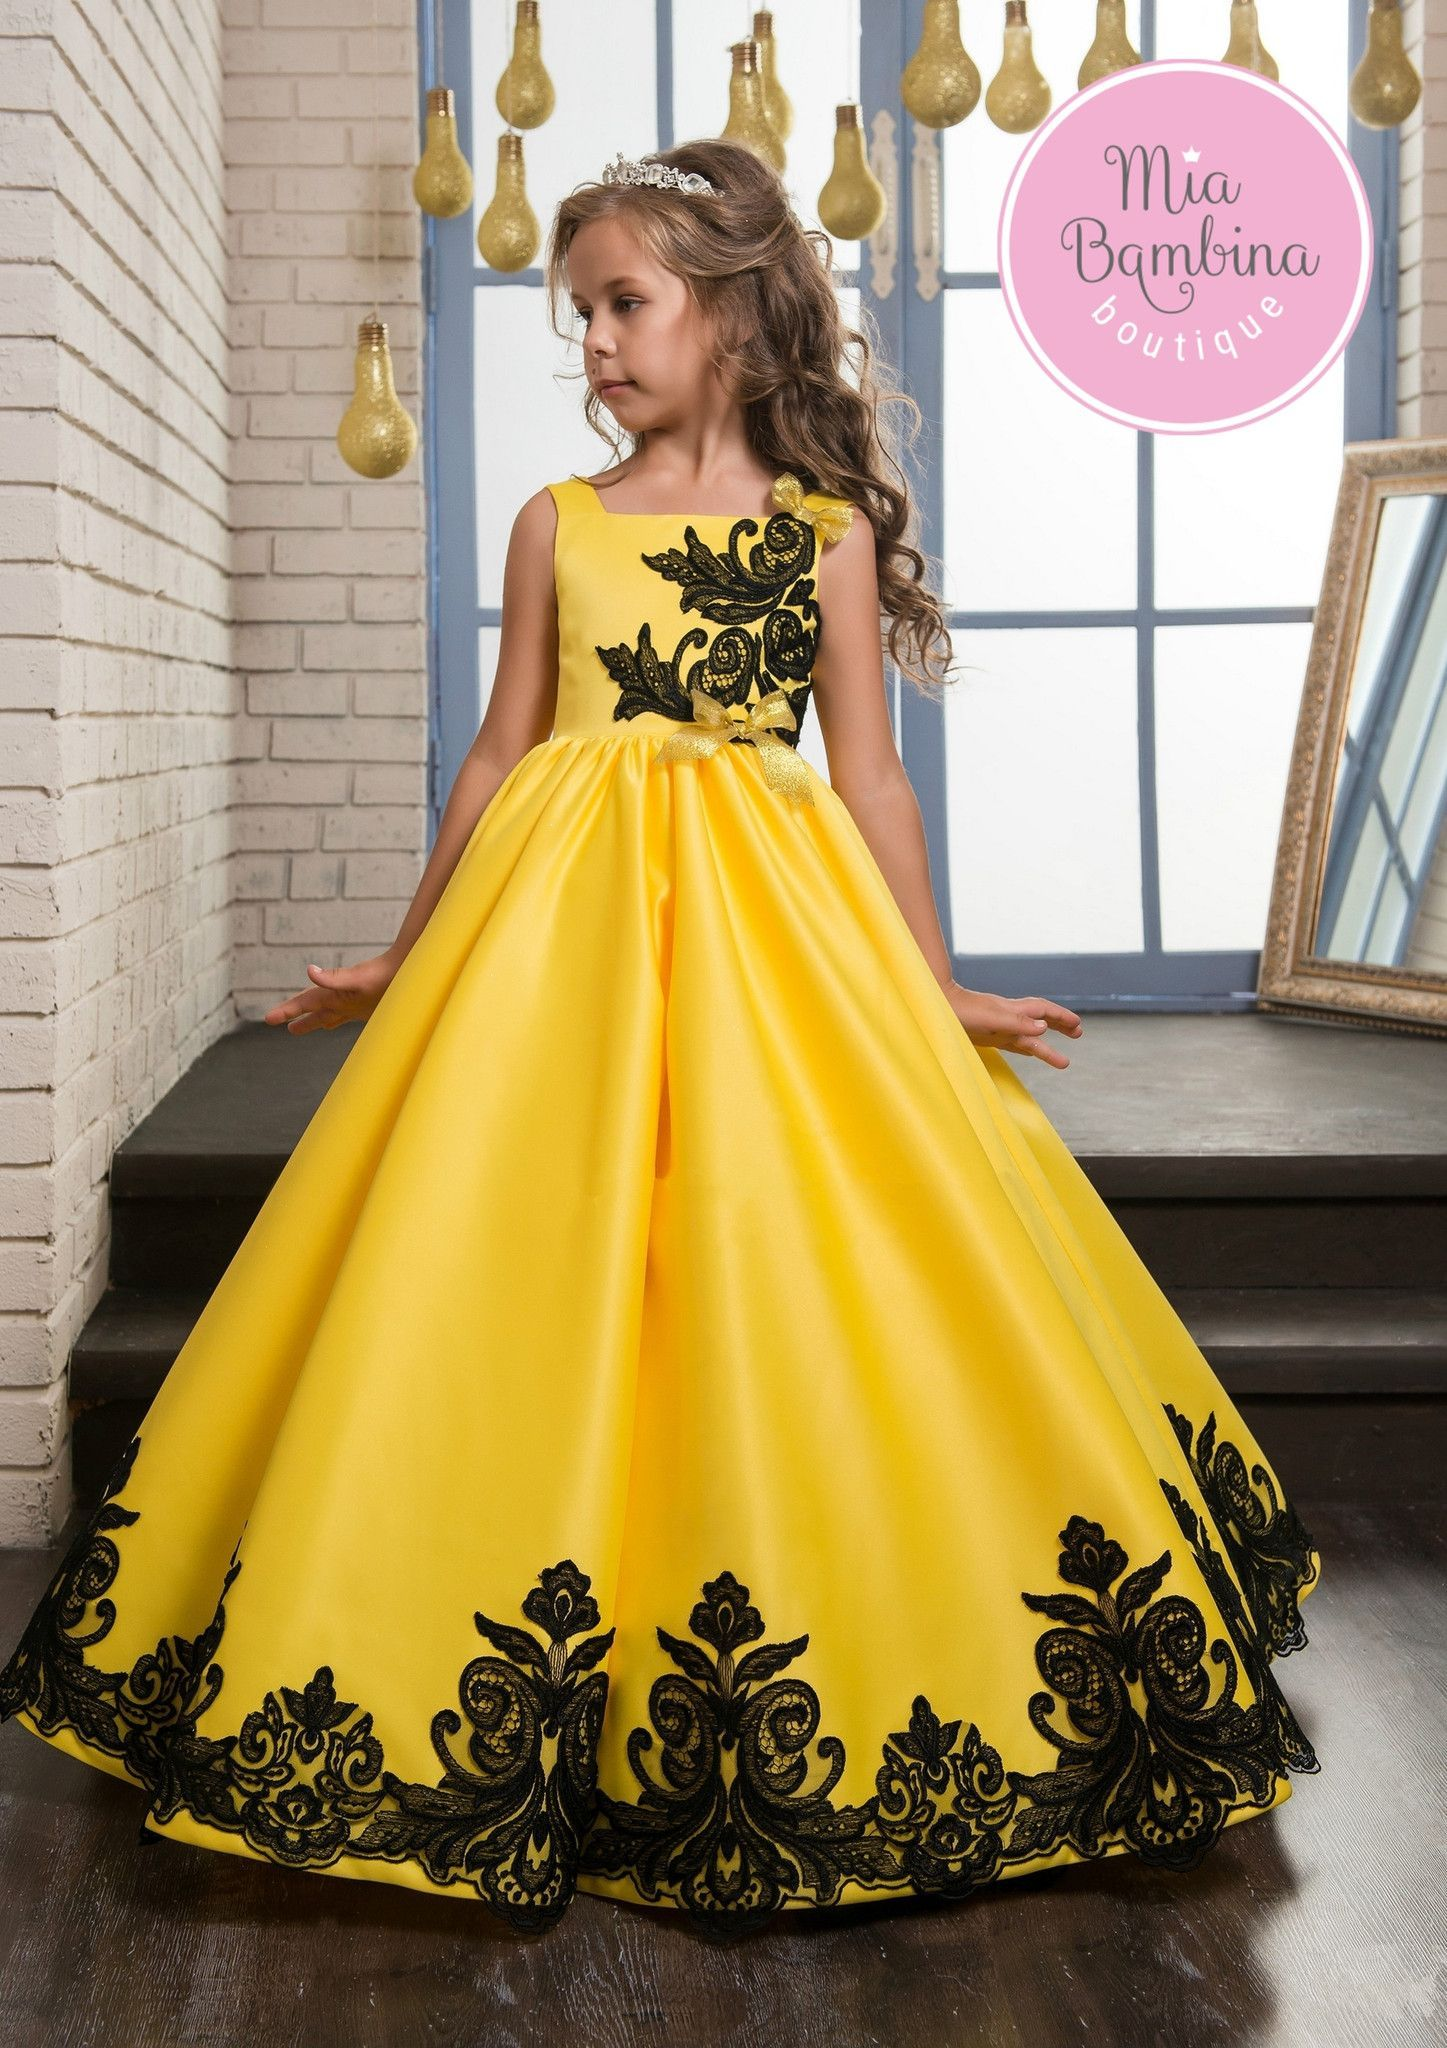 059e7eab58 A beautiful Laredo dress will make your little girl look like a princess.  This satin gown features a square neckline